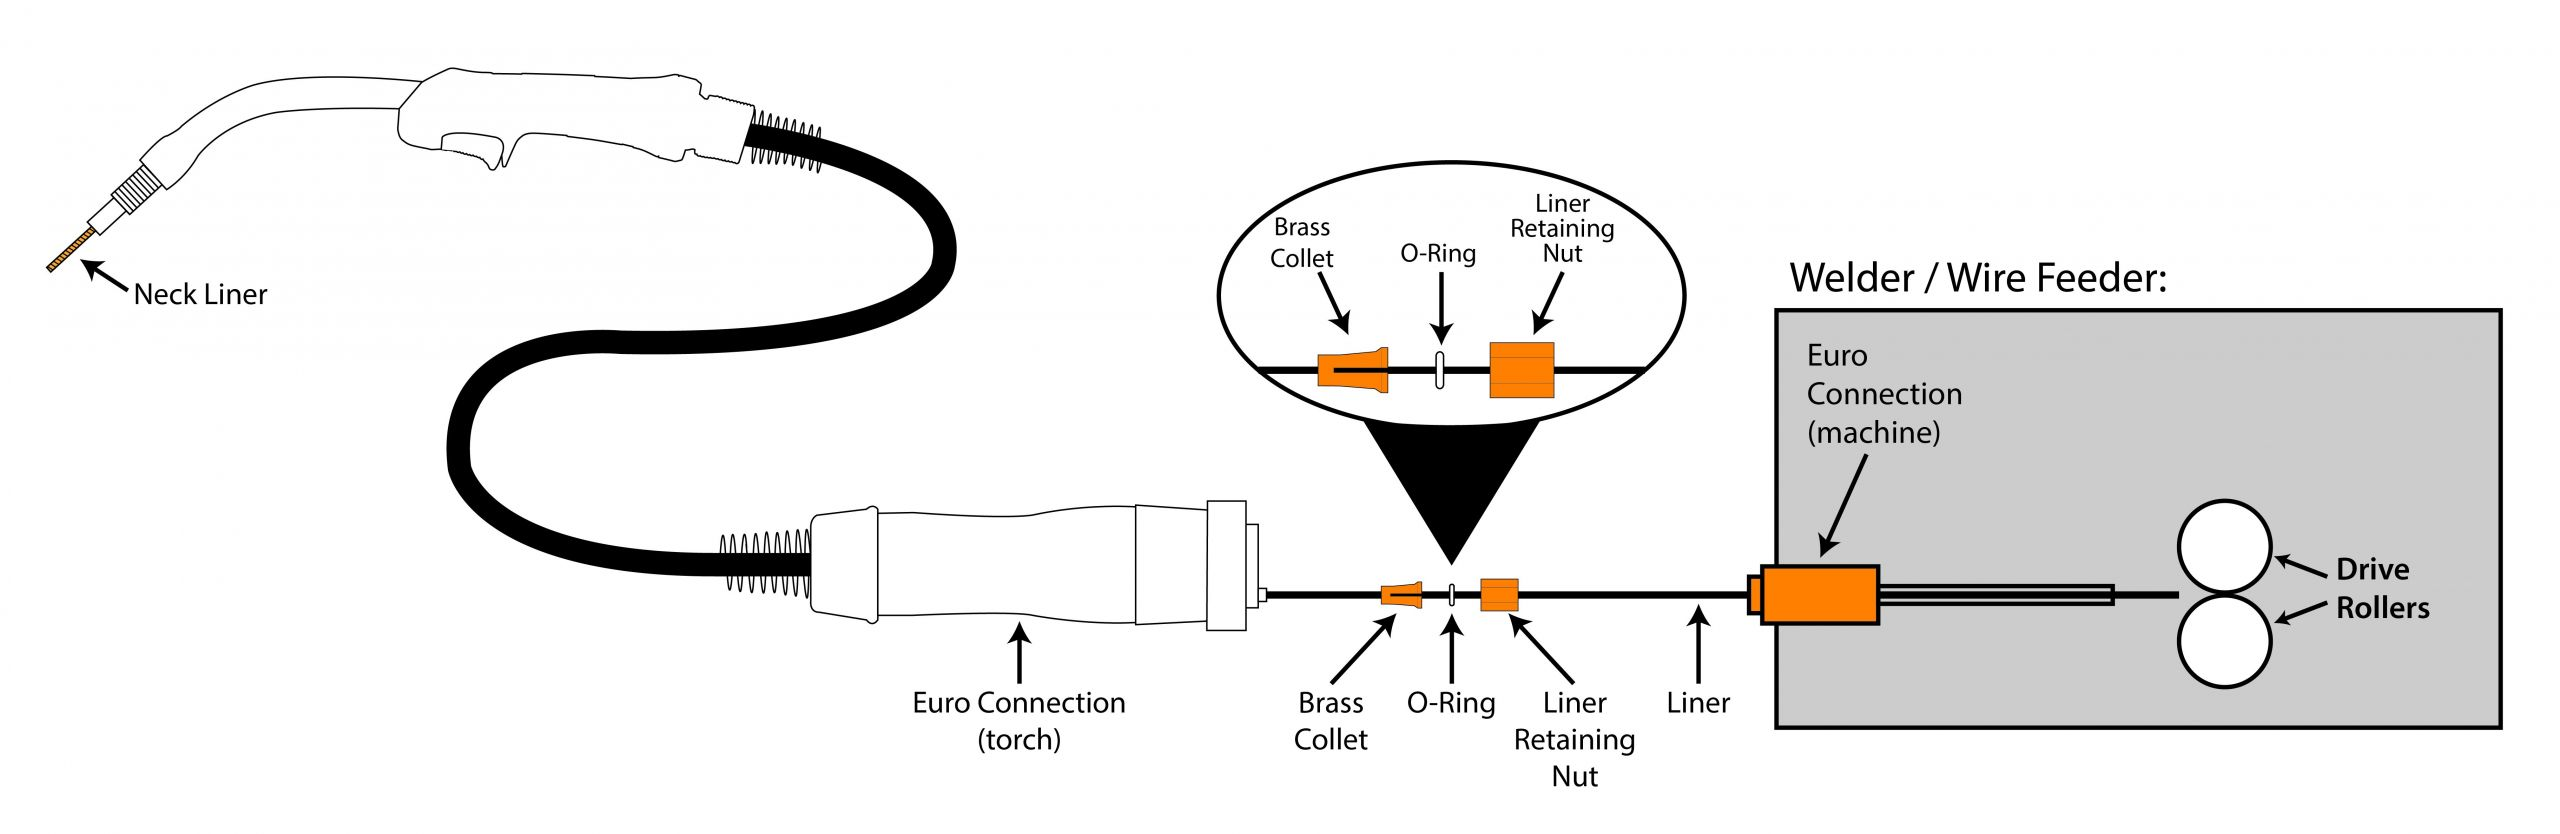 Ds4 Wiring Diagram Viper Ds4 Wiring Diagram Of Ds4 Wiring Diagram